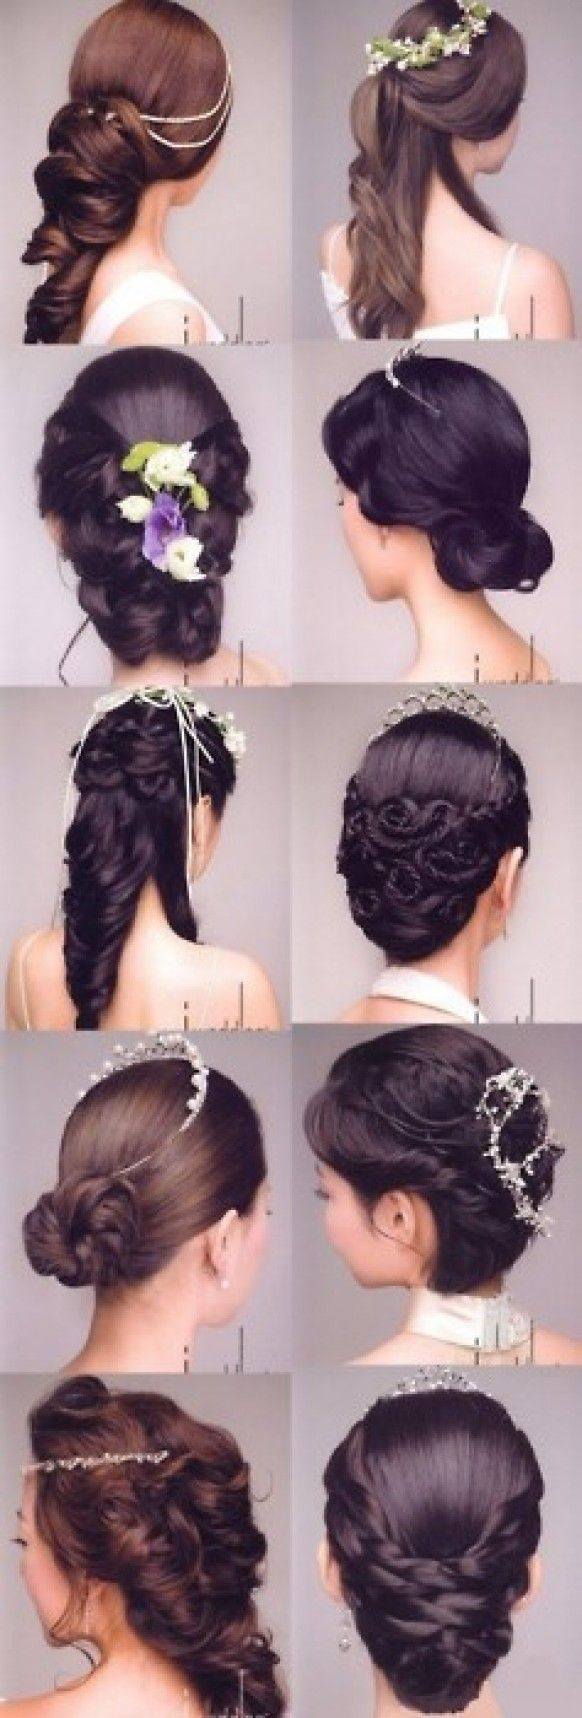 best things to do with my wavy hair images on pinterest